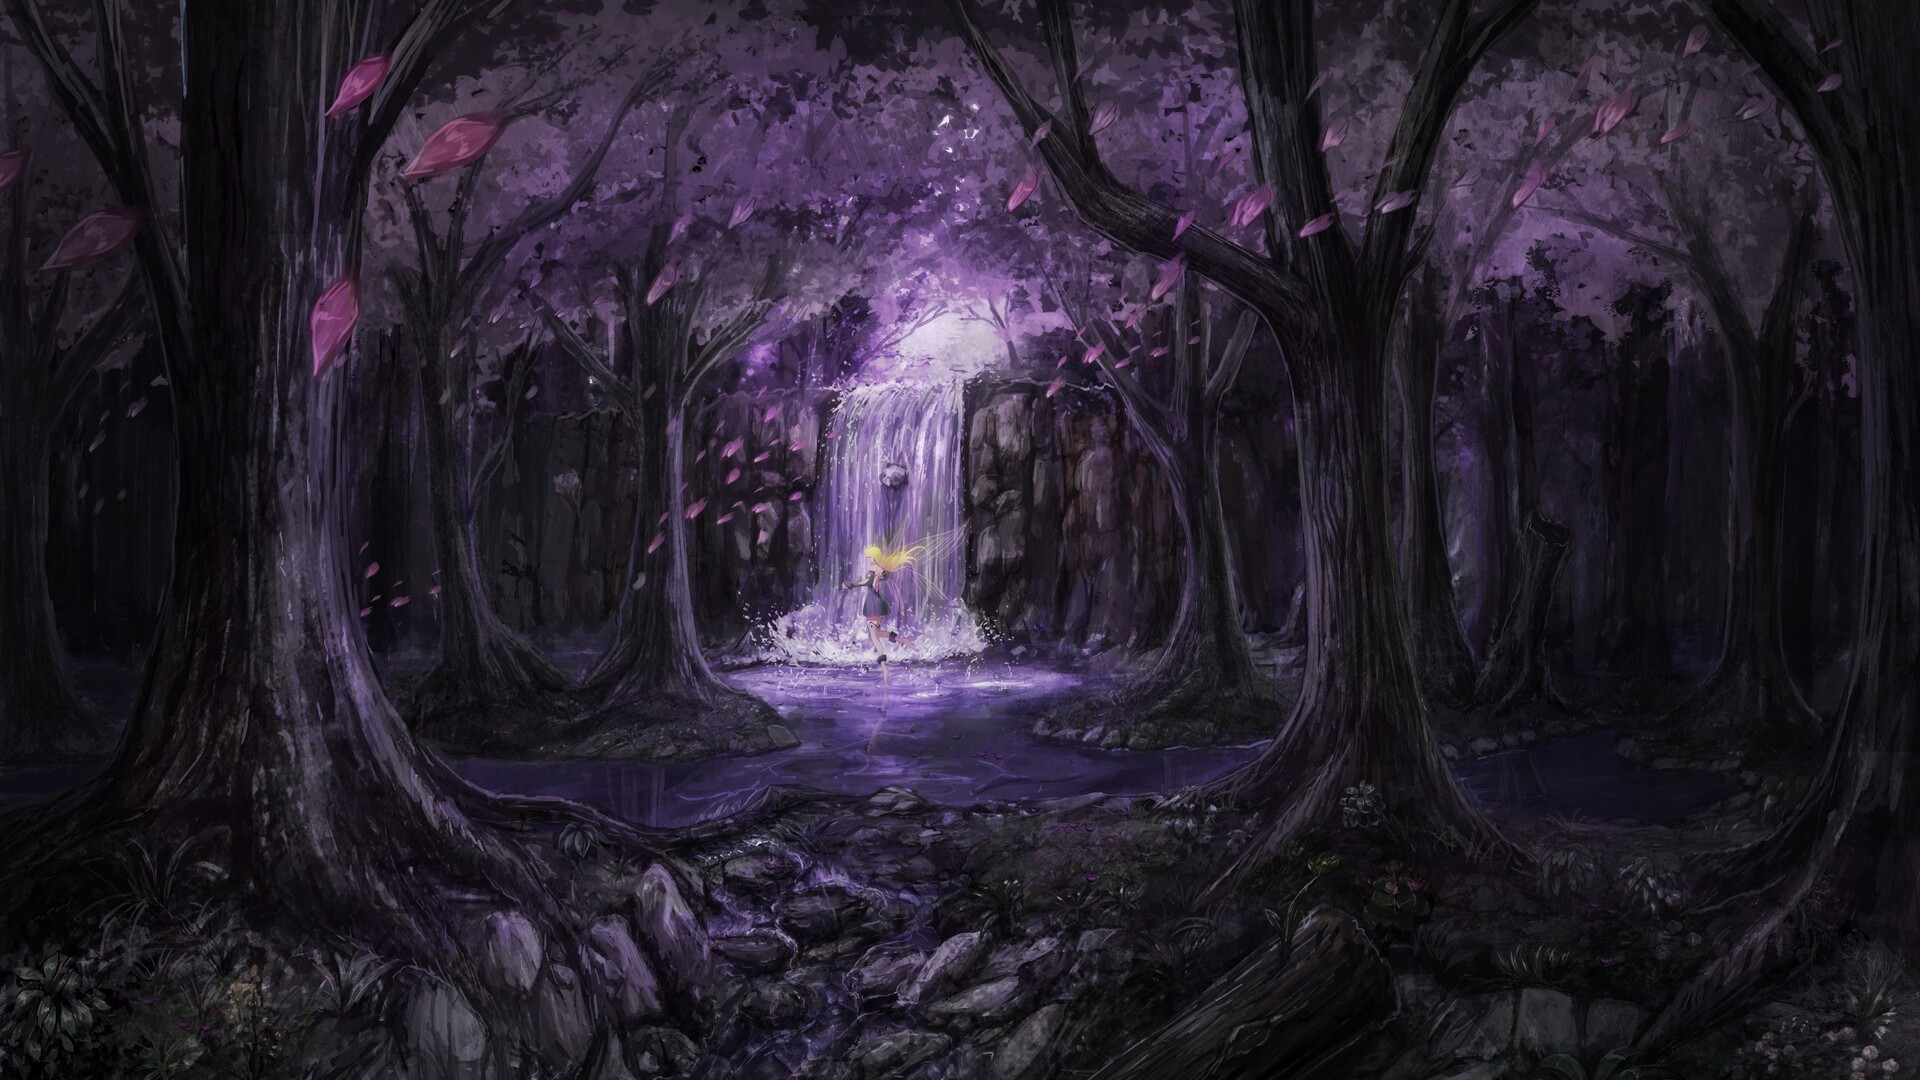 1920x1080 Anime Landscape Trees Dress Fairies 5k Laptop Full Hd